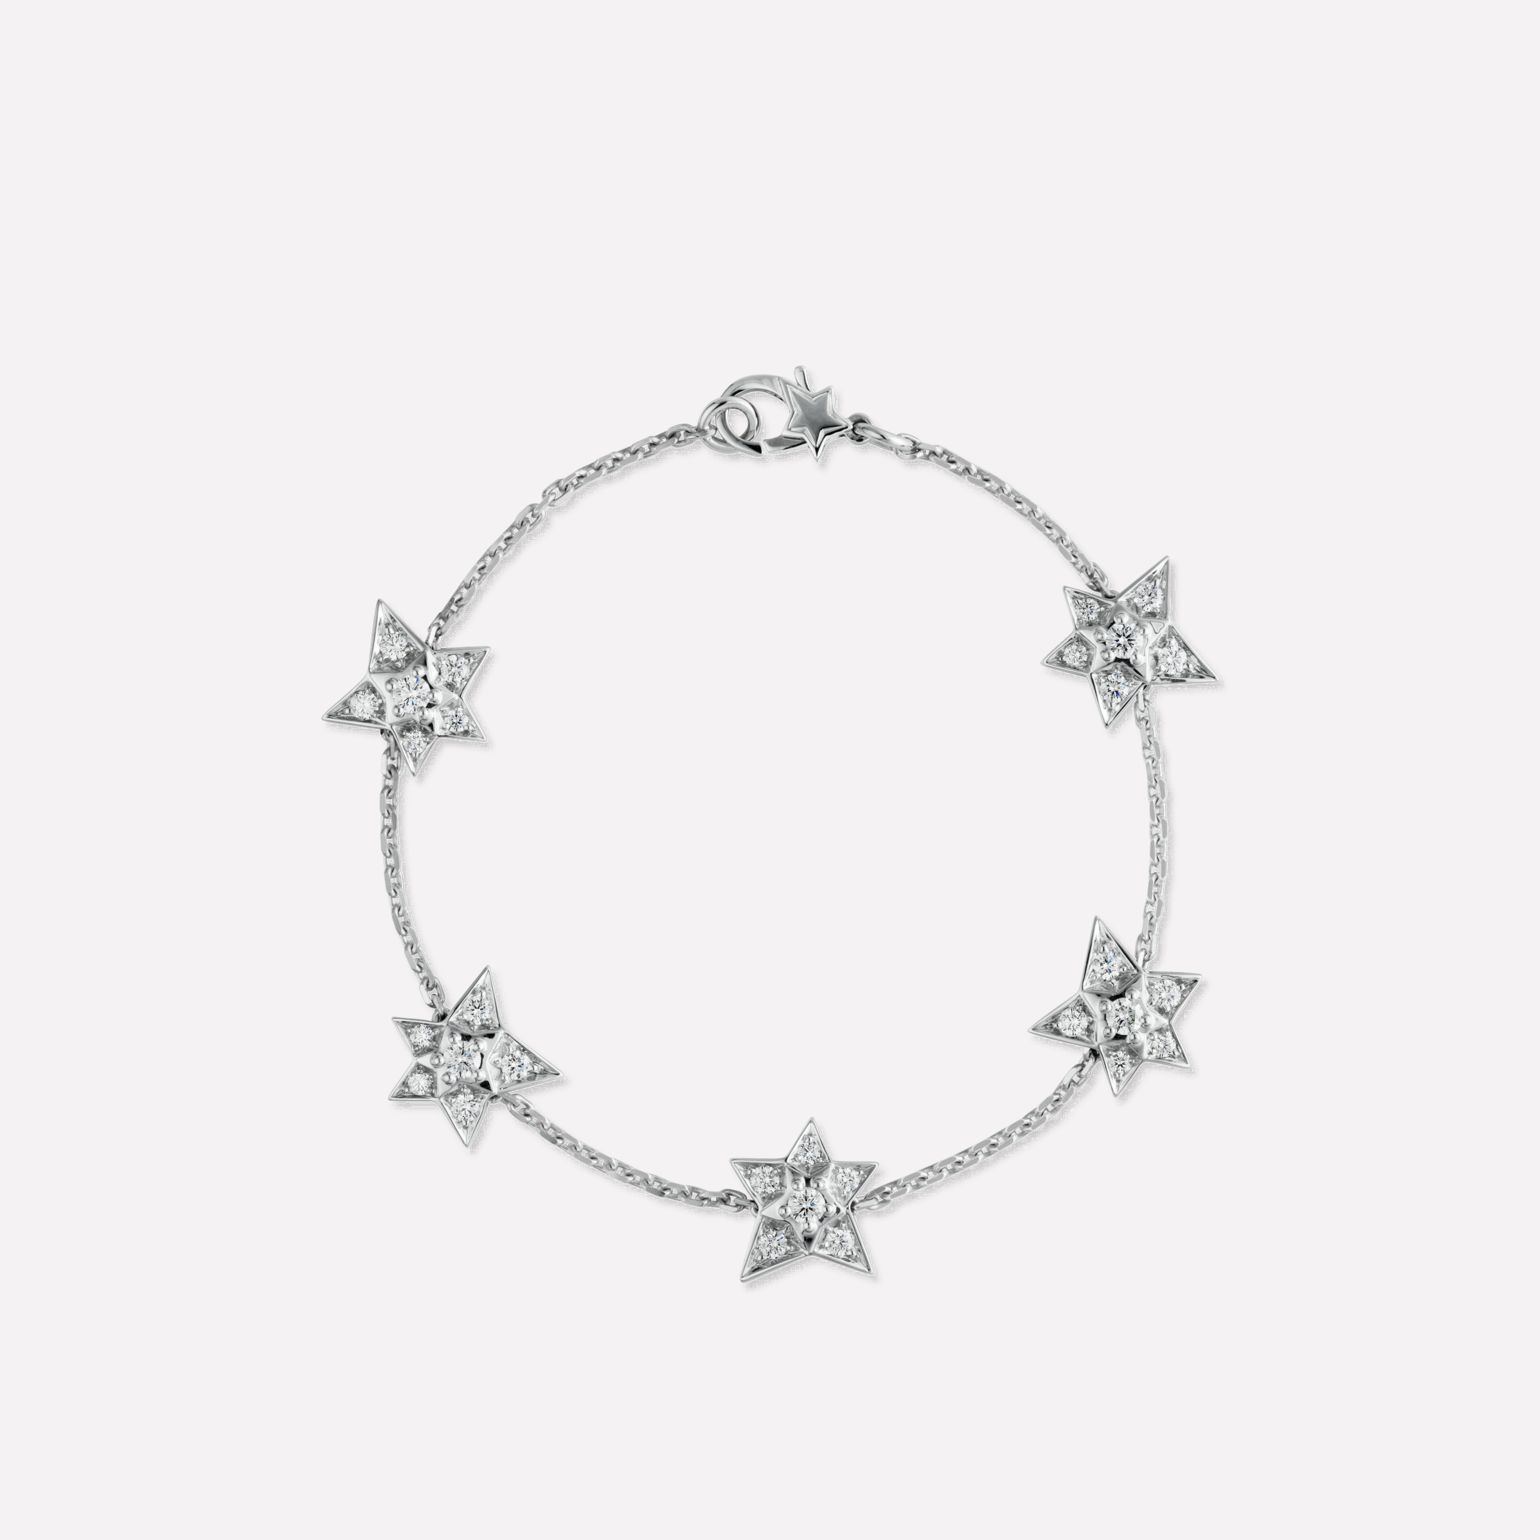 Comète bracelet Five star bracelet in 18K white gold and diamonds